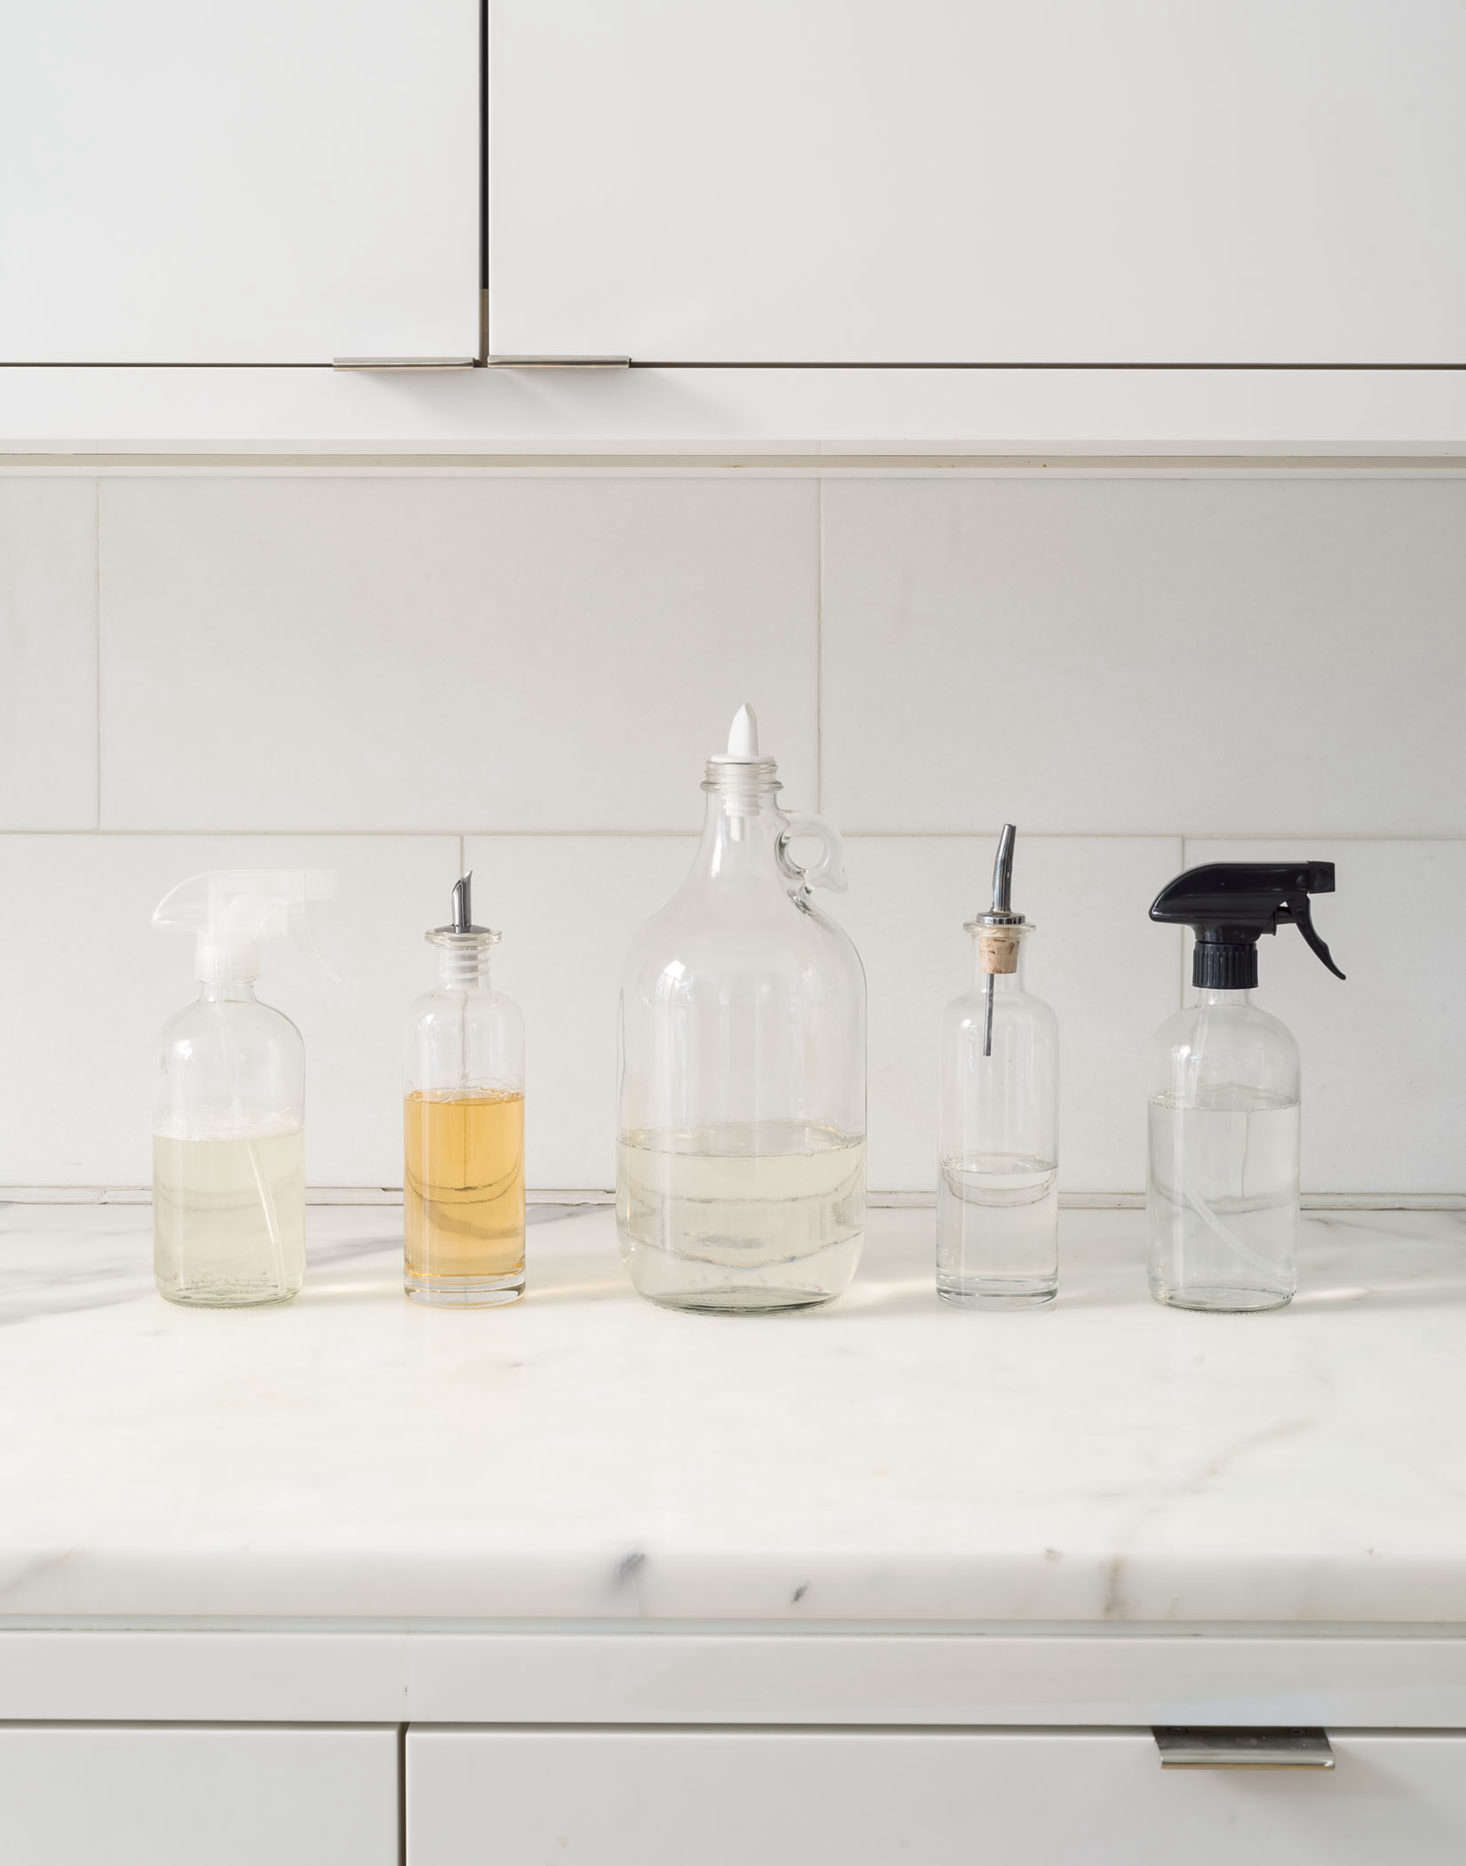 The Organized Sink: 3 Rules for Decanting Kitchen Cleaning Products ...